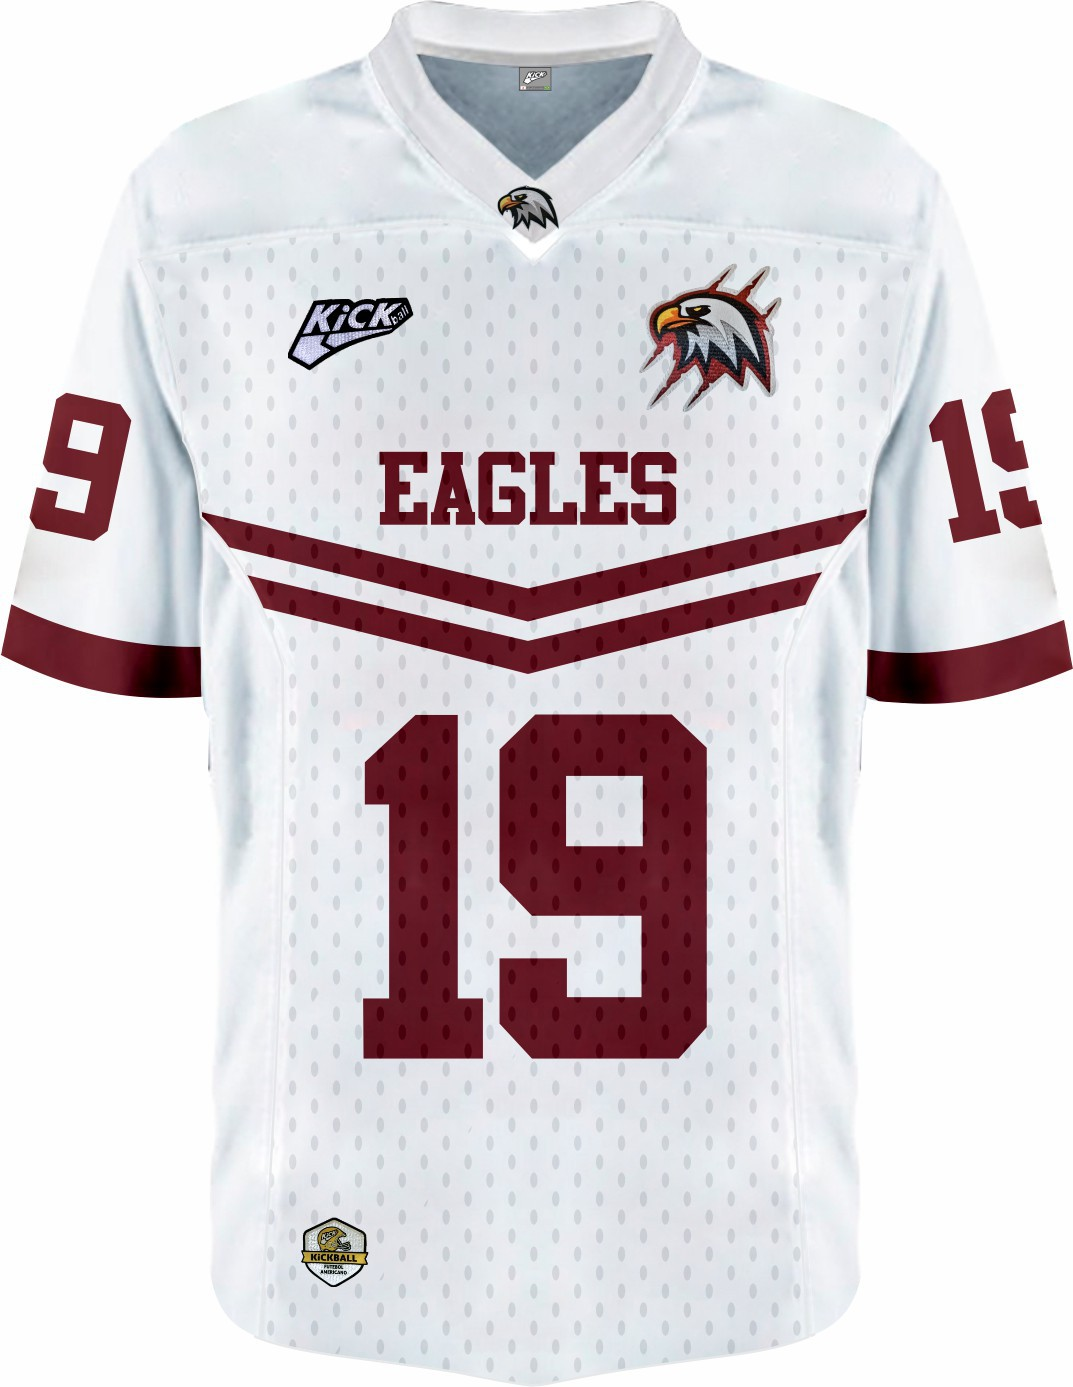 Camisa Of.  Santa Maria Eagles Jersey Plus Inf. Mod1